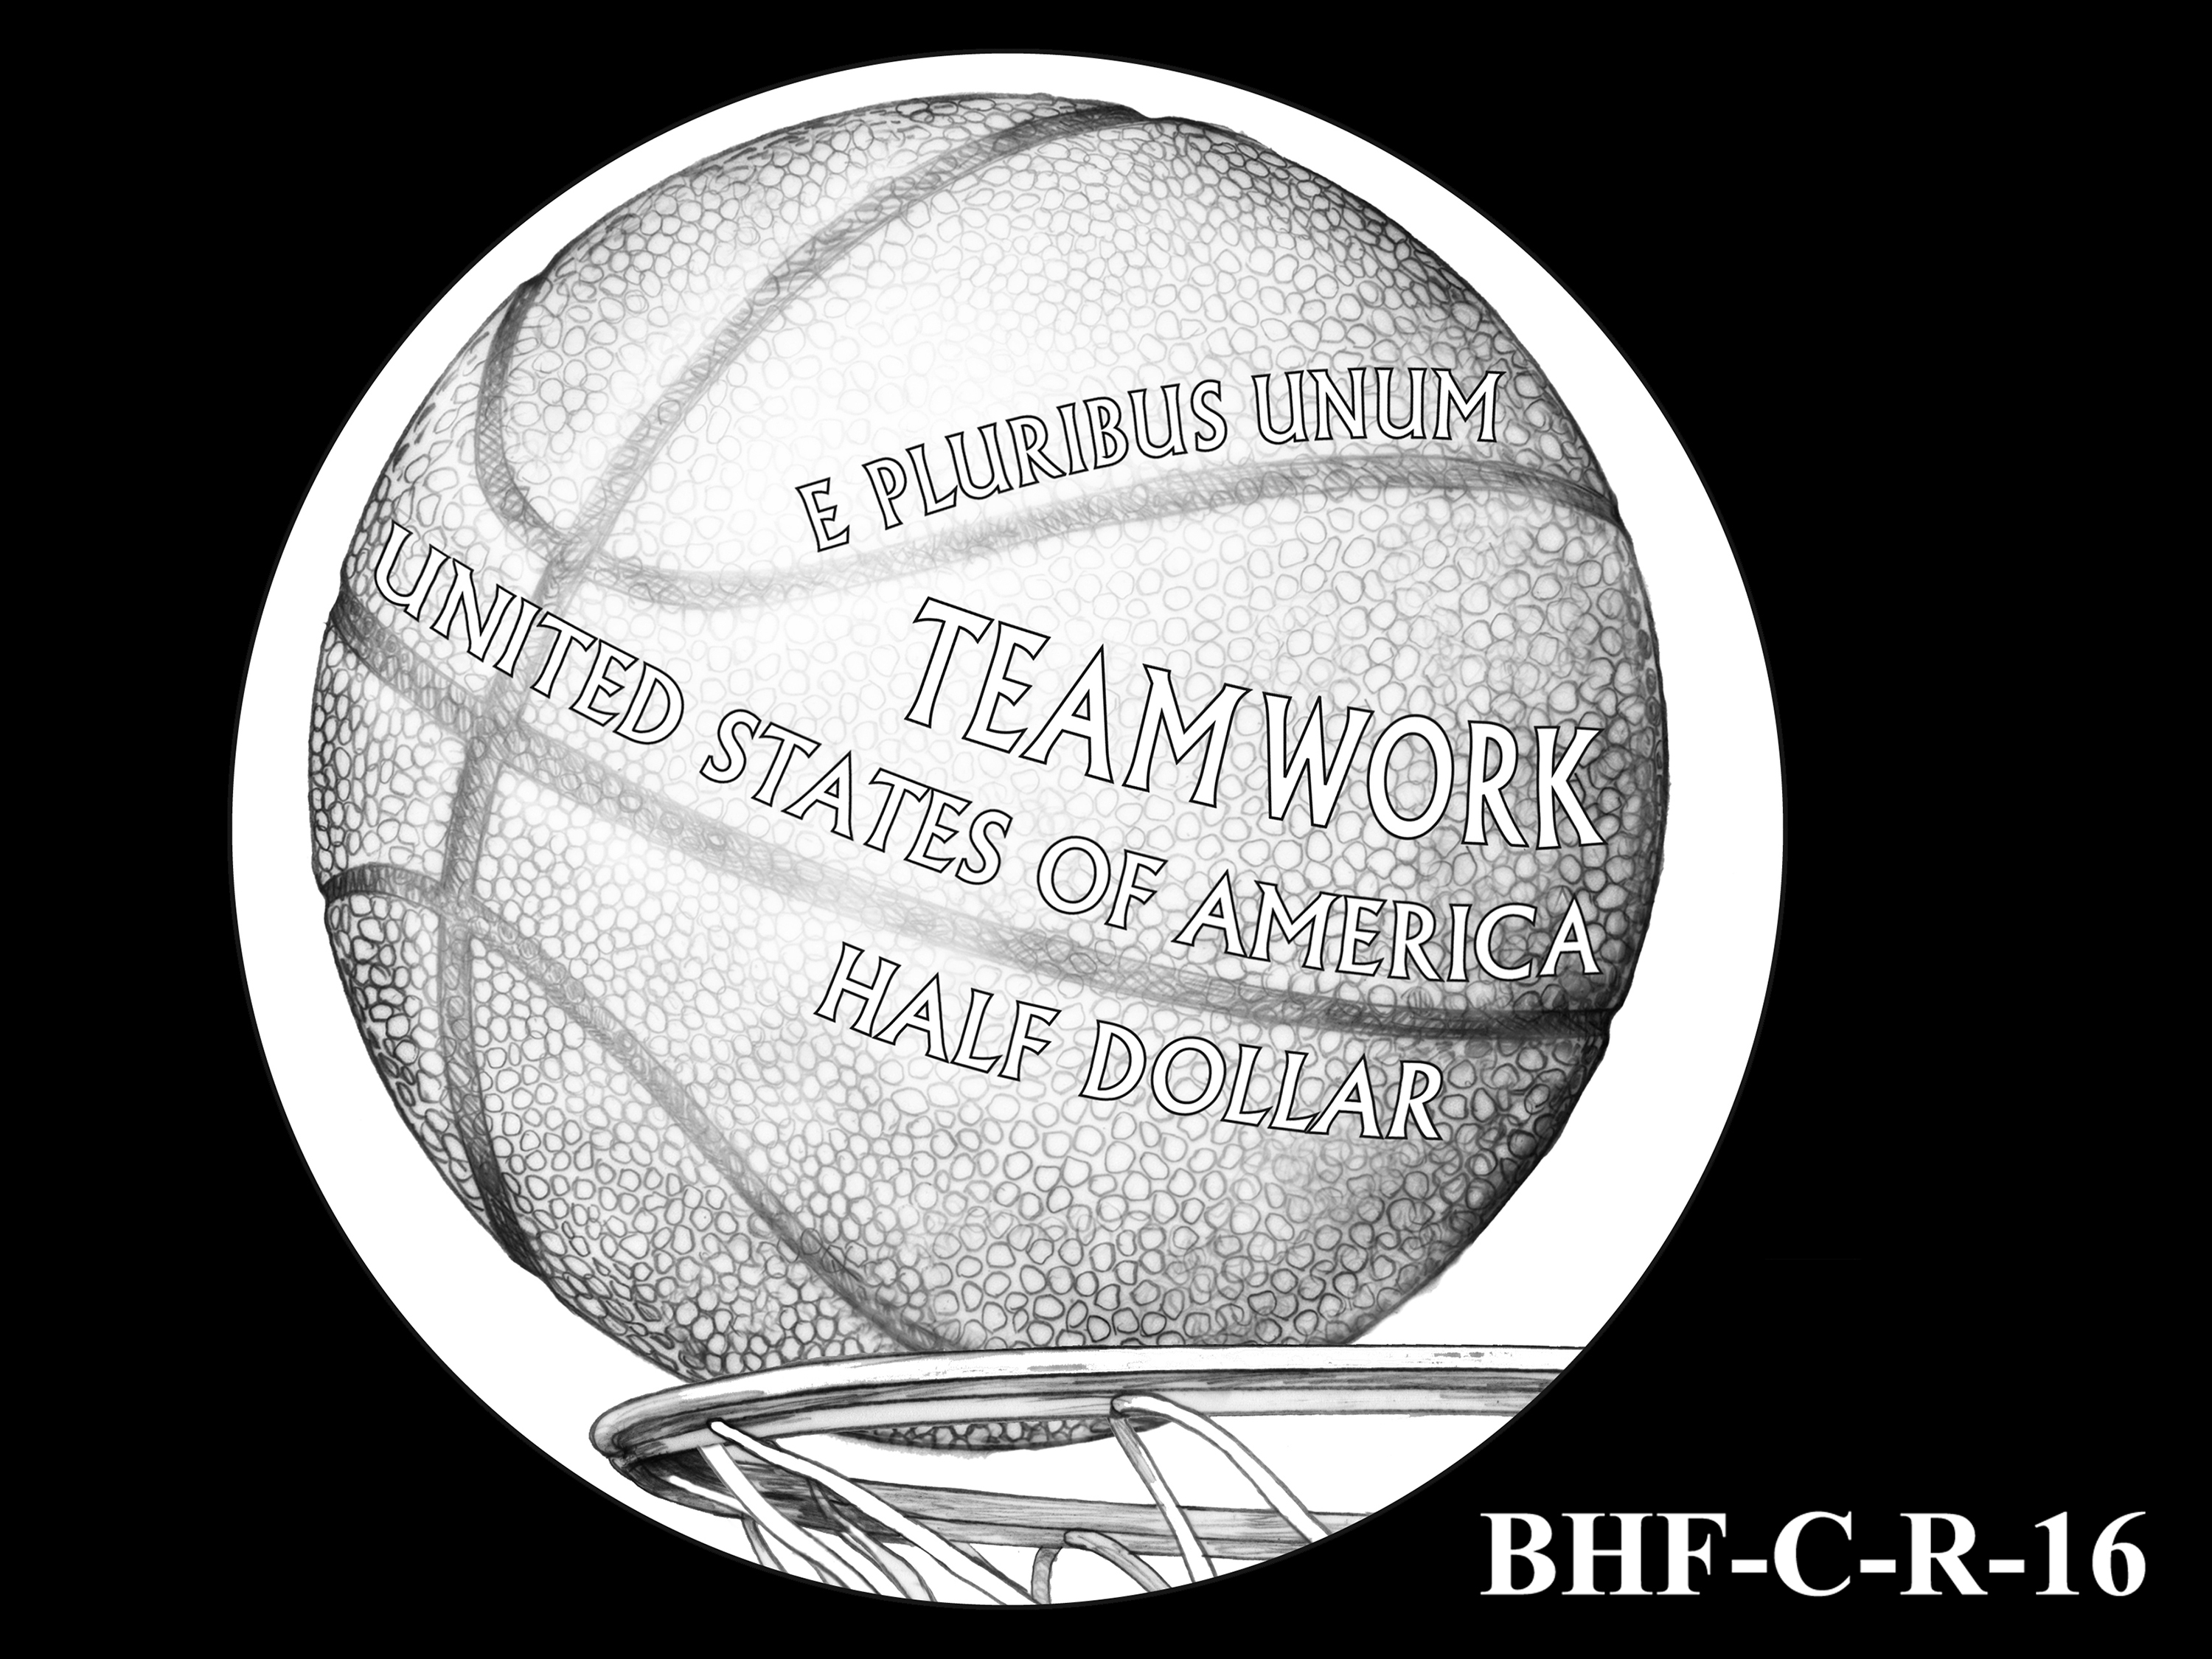 BHF-C-R-16 -- 2020 Basketball Hall of Fame Commemorative Coin Program - Clad Reverse